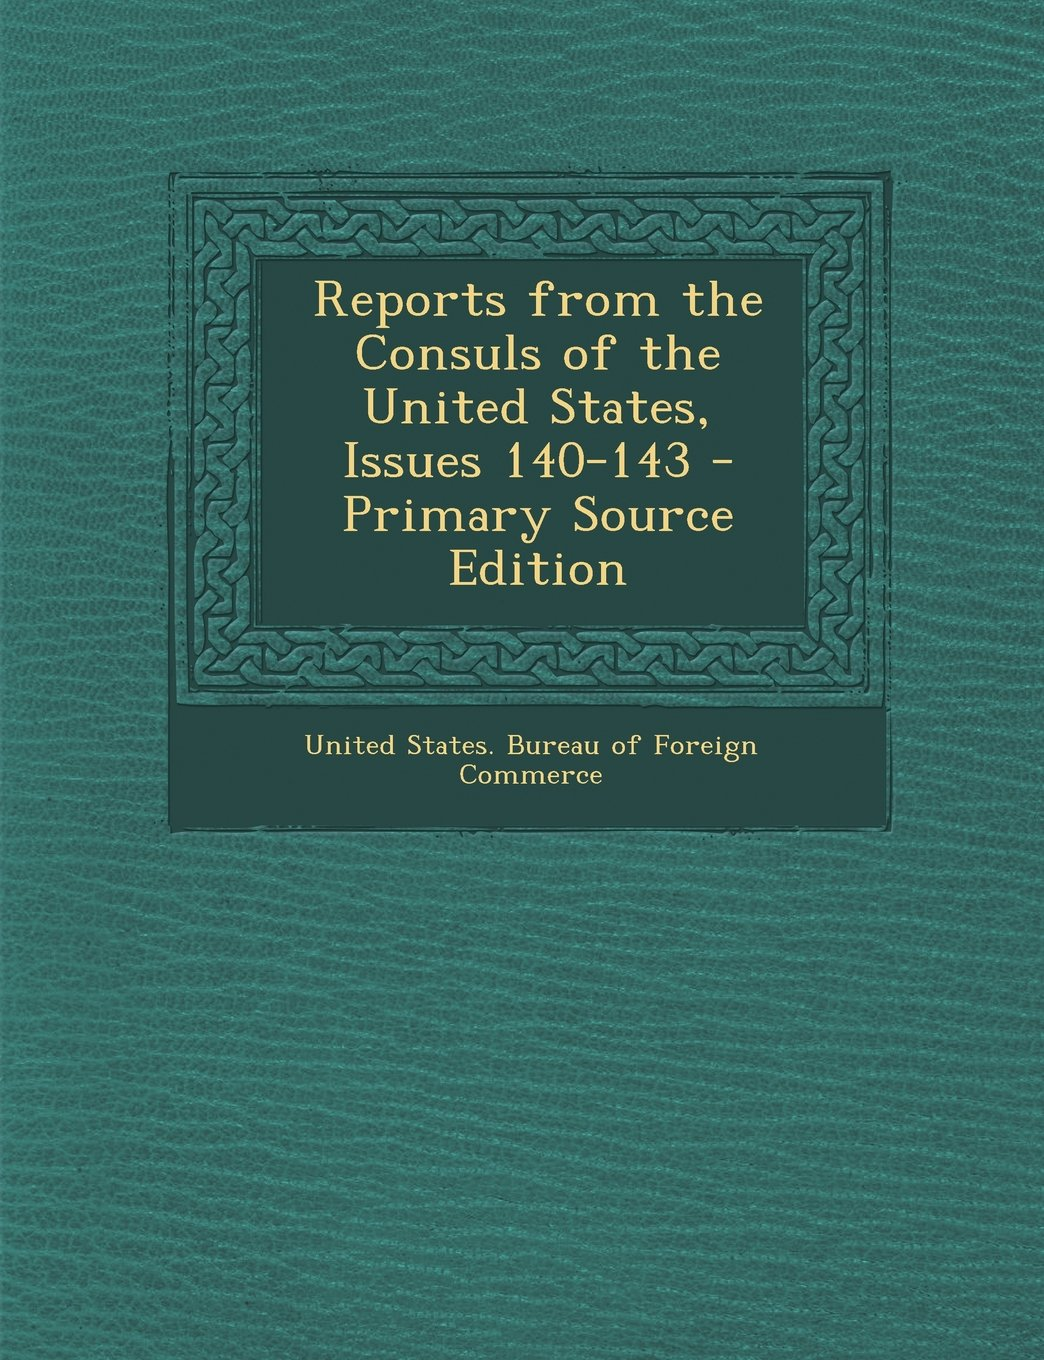 Reports from the Consuls of the United States, Issues 140-143 - Primary Source Edition pdf